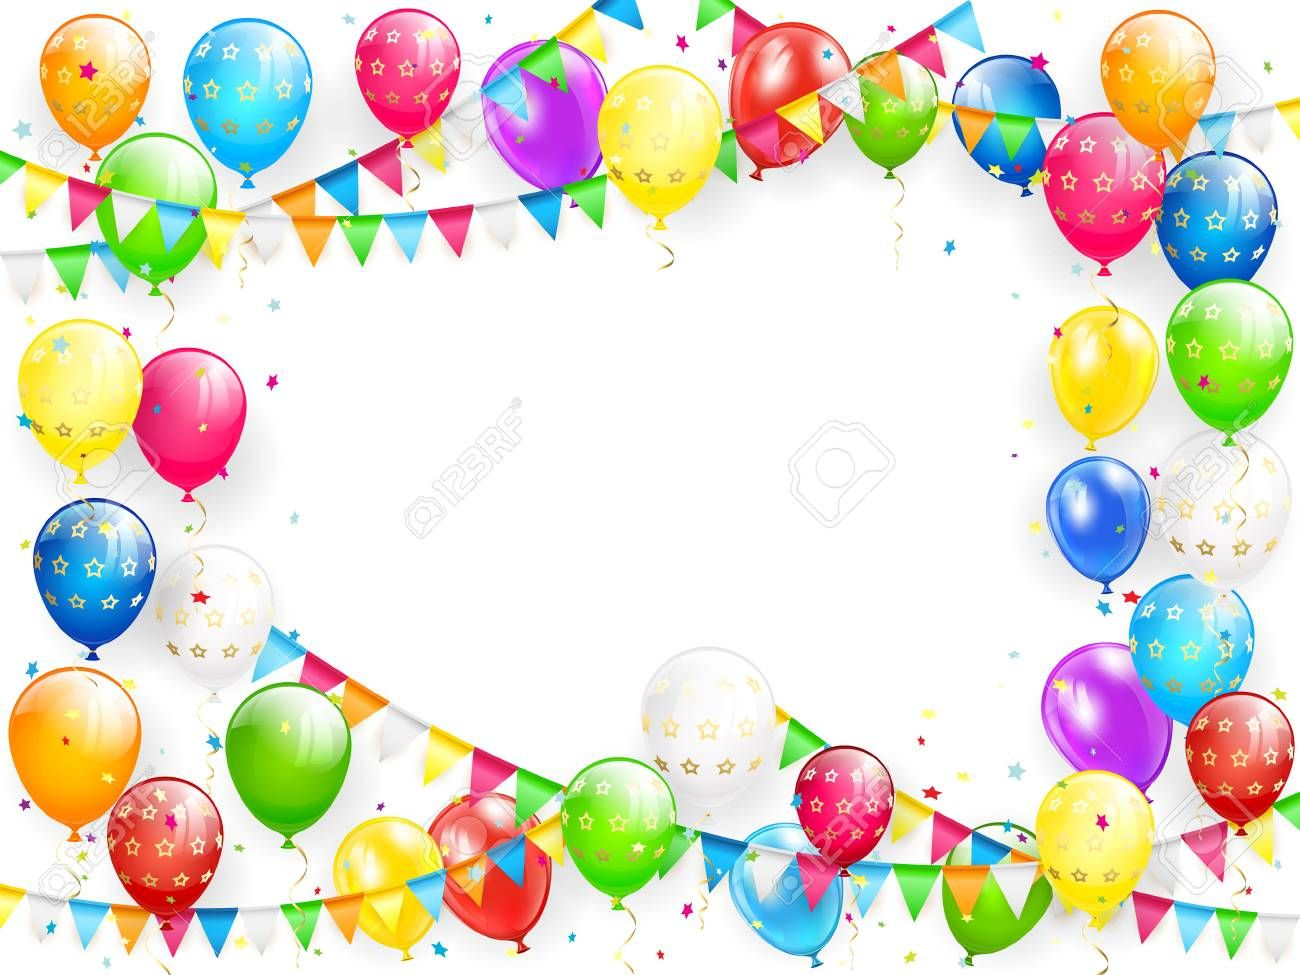 Frame Of Flying Colorful Balloons, Multicolored Pennants And.. Royalty Free Cliparts, Vectors, And Stock Illustration. Image 81167326.